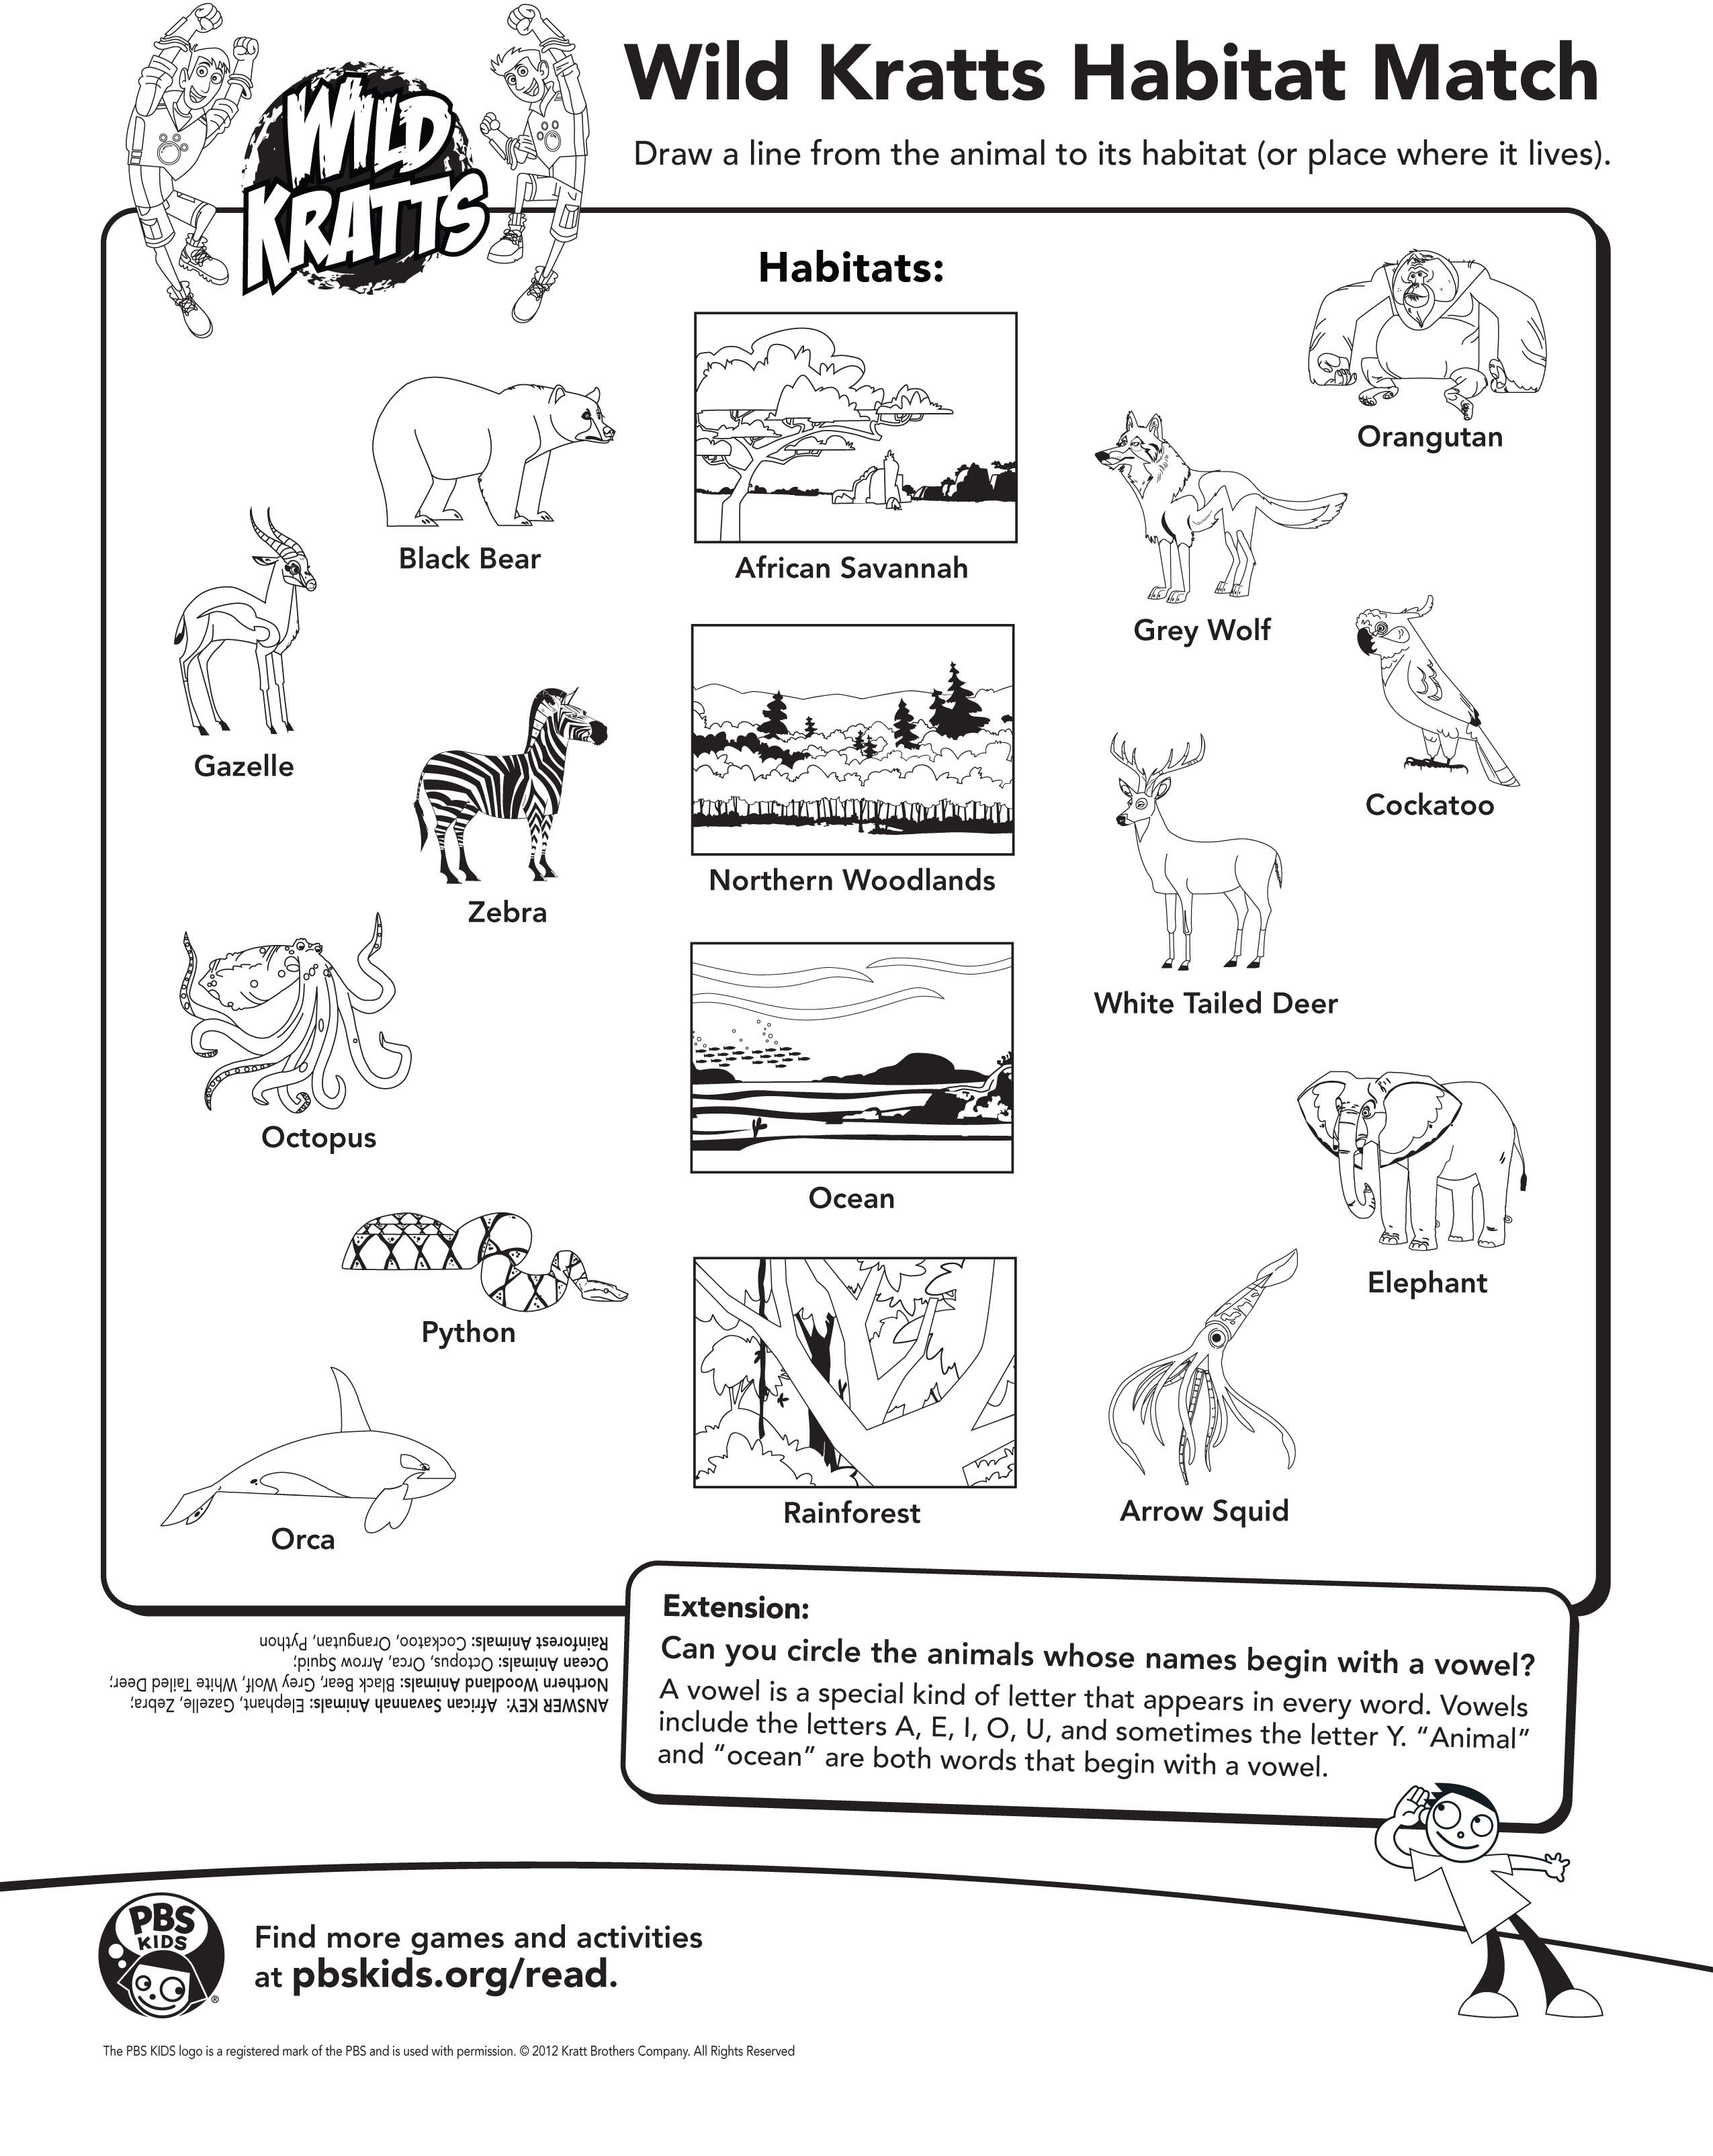 Draw A Line From The Animal To It S Habitat Wild Kratts Activity Page Wild Kratts Wild Kratts Birthday Wild Kratts Party